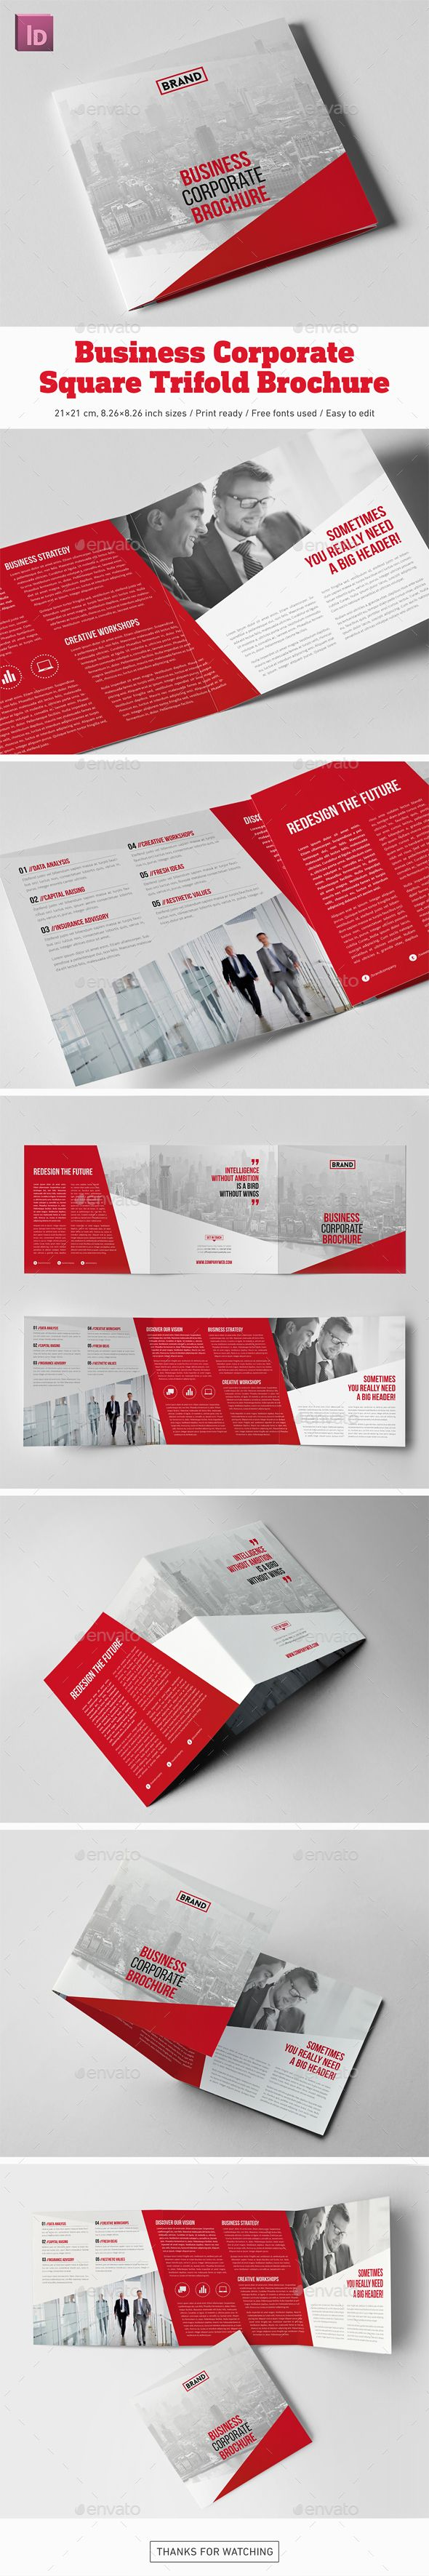 business corporate square trifold brochure pinterest corporate